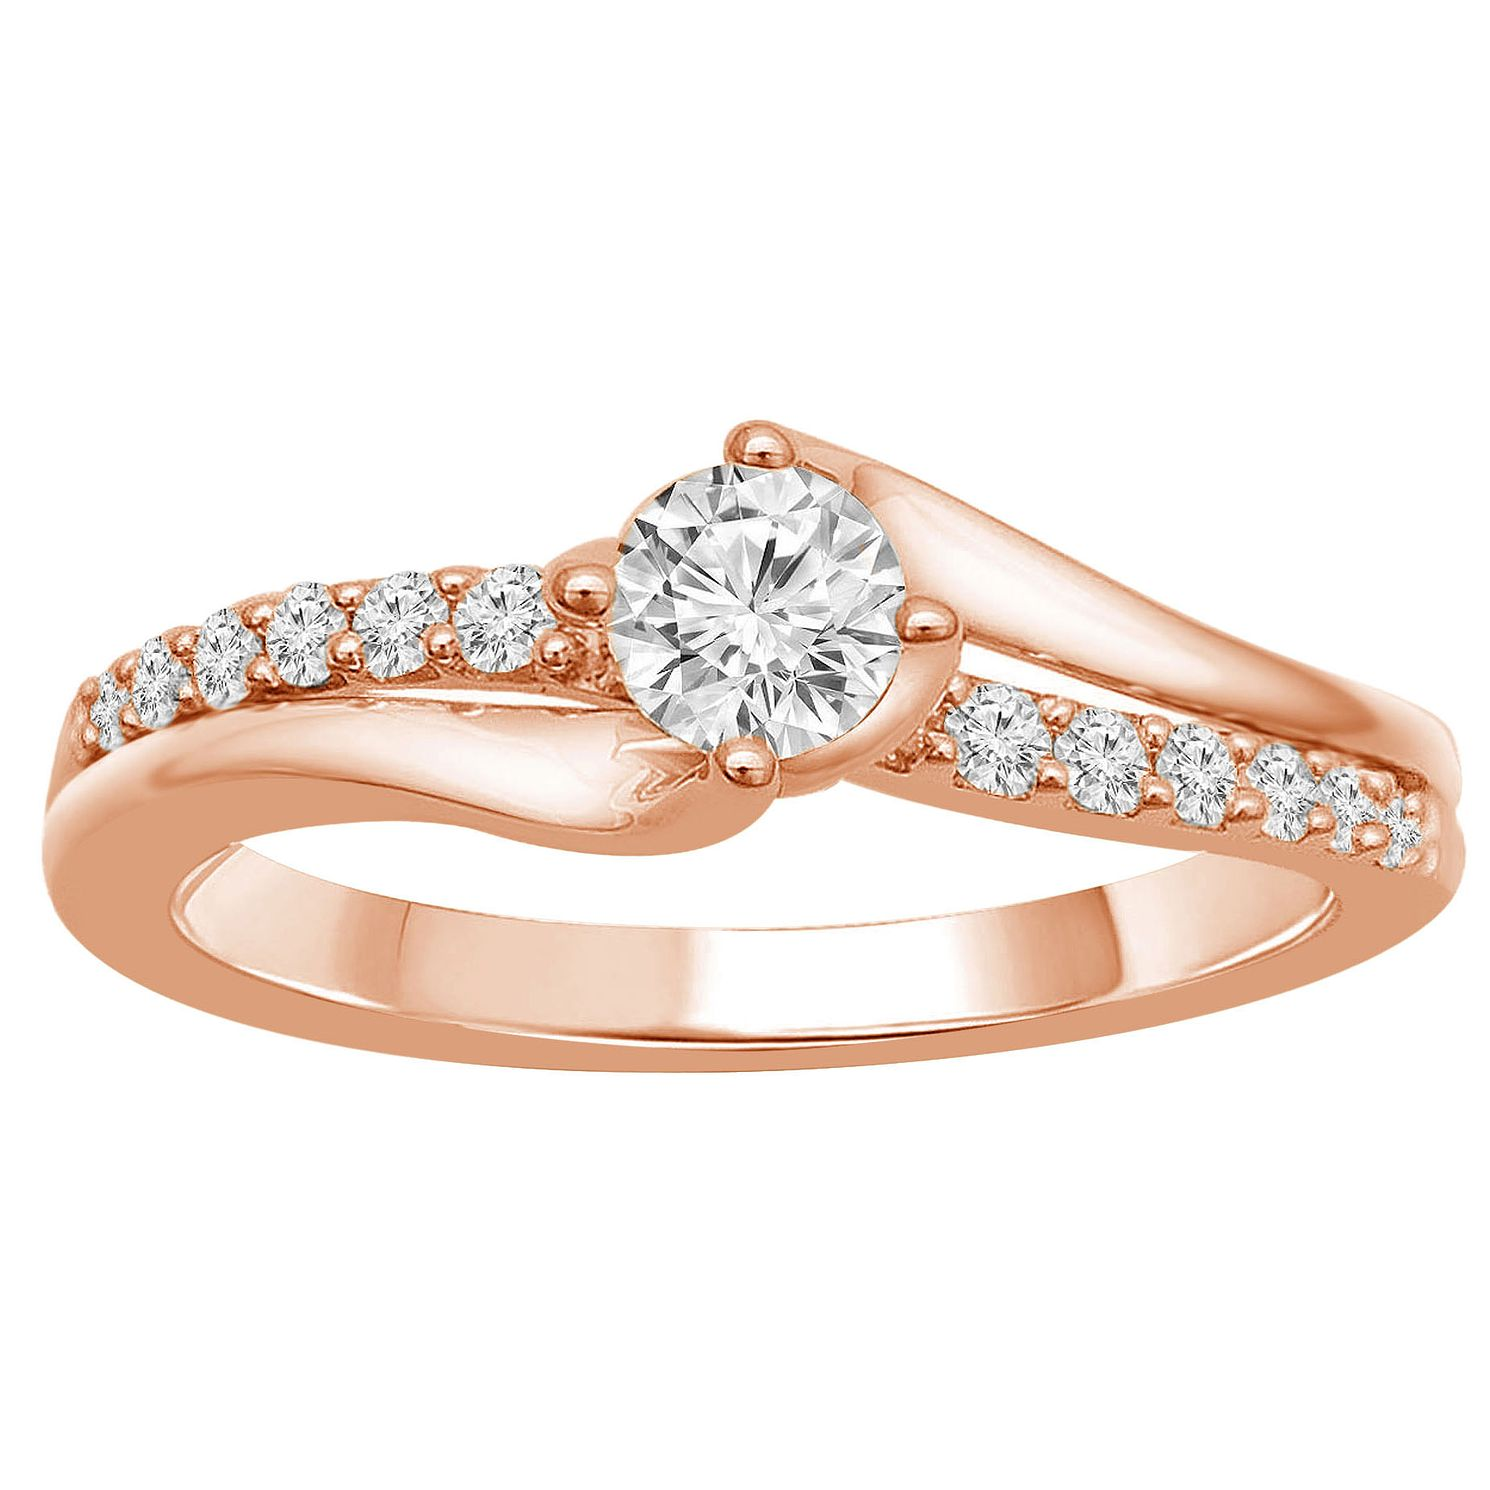 18ct Rose Gold 1/2ct Diamond Solitaire Twist Ring - Product number 9560084